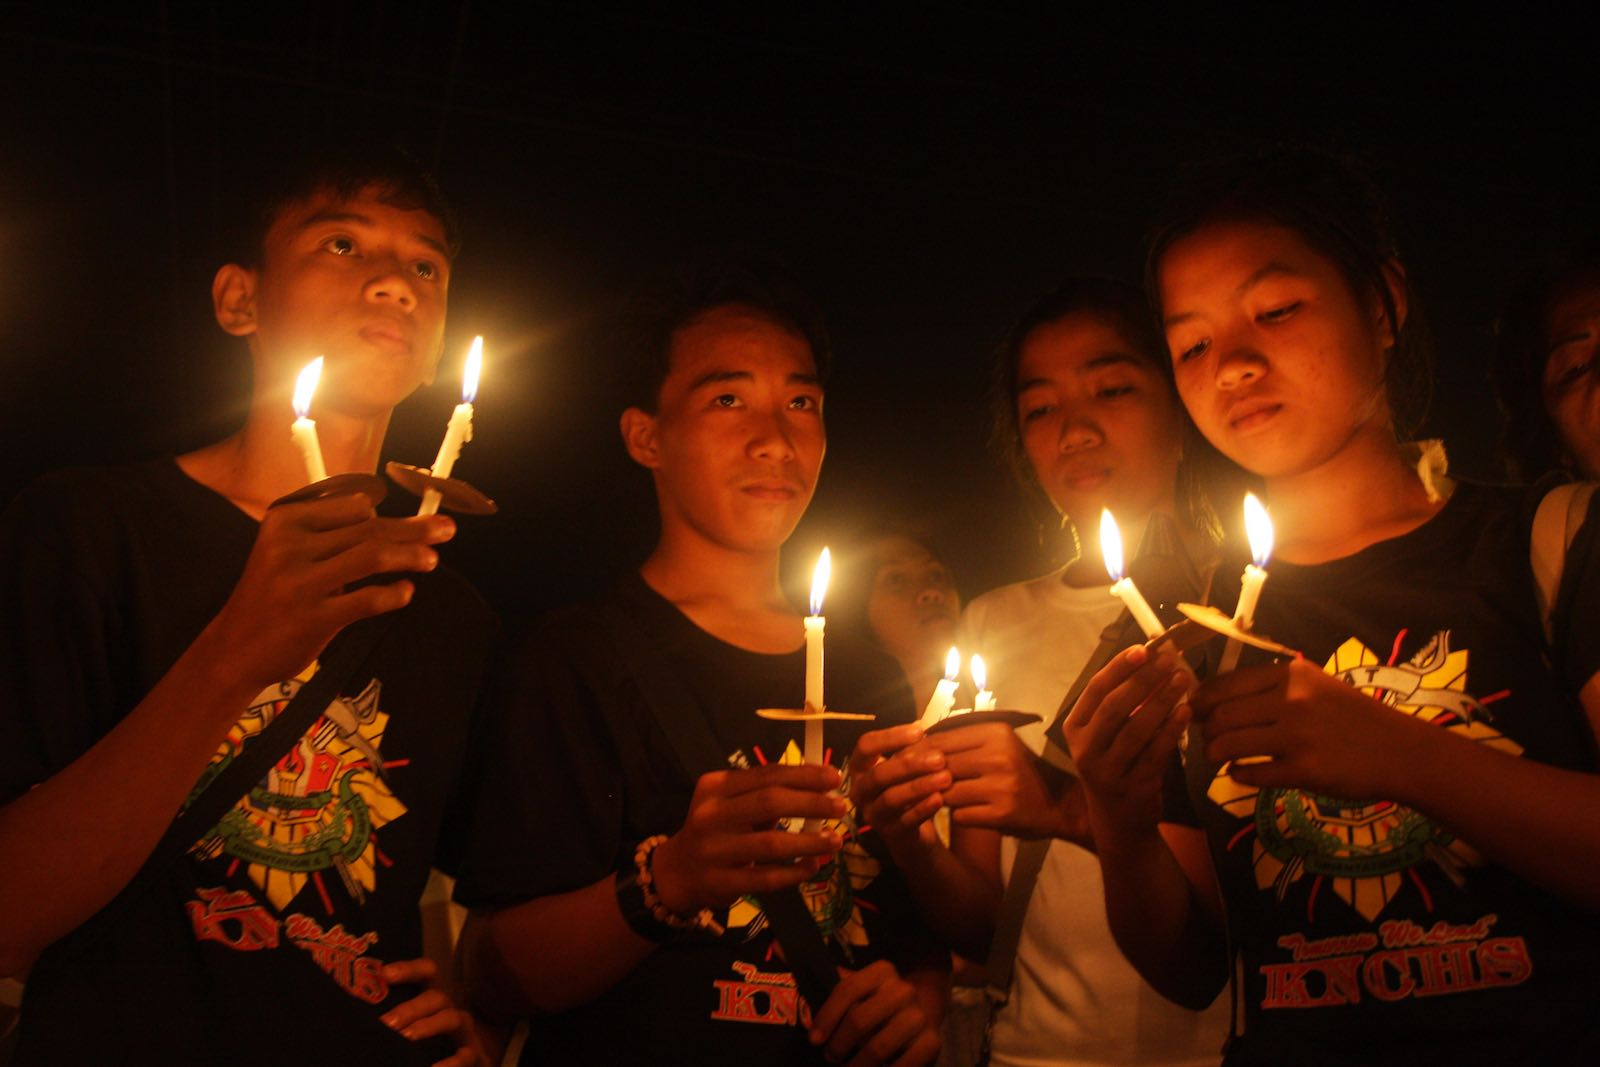 A vigil for victims held the day after the Maguindanao massacre, November 2009 (Photo: Jeoffrey Maitem/Getty Images)